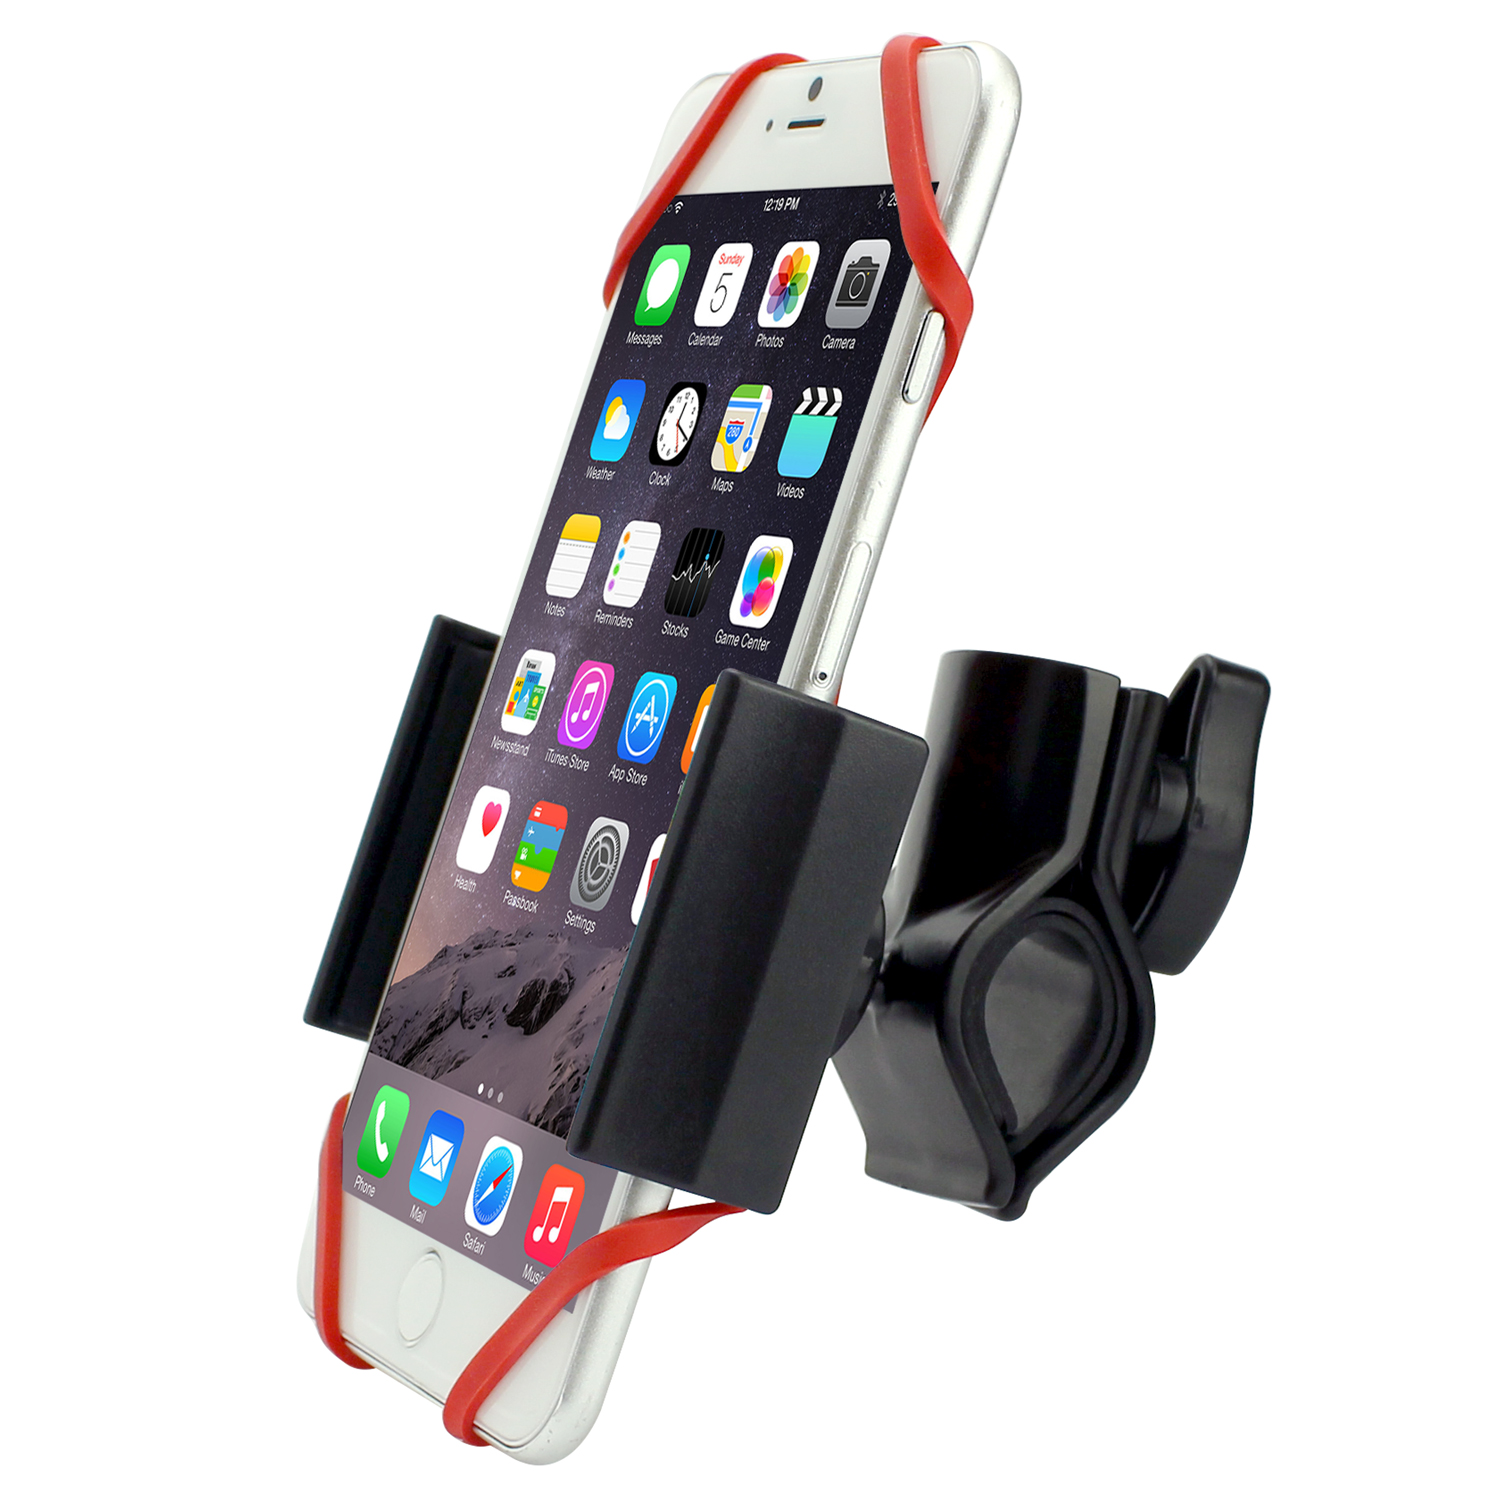 Huawei P9 Bike Phone Mount Adjustable Black